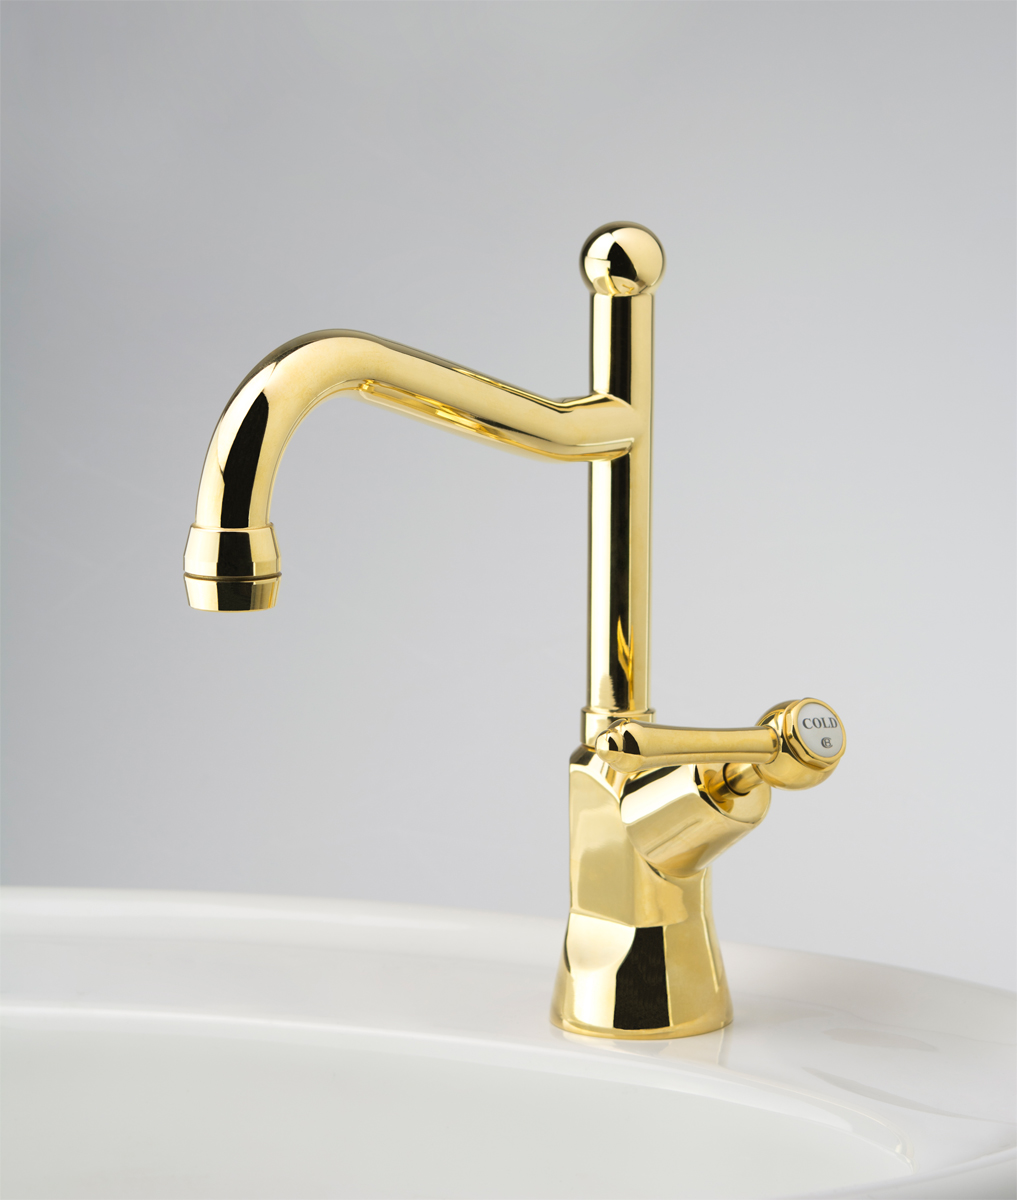 Olde Adelaide Drinking Water Pillar Tap with Swivel Outlet & Roulette Lever Handle in Antique Brass